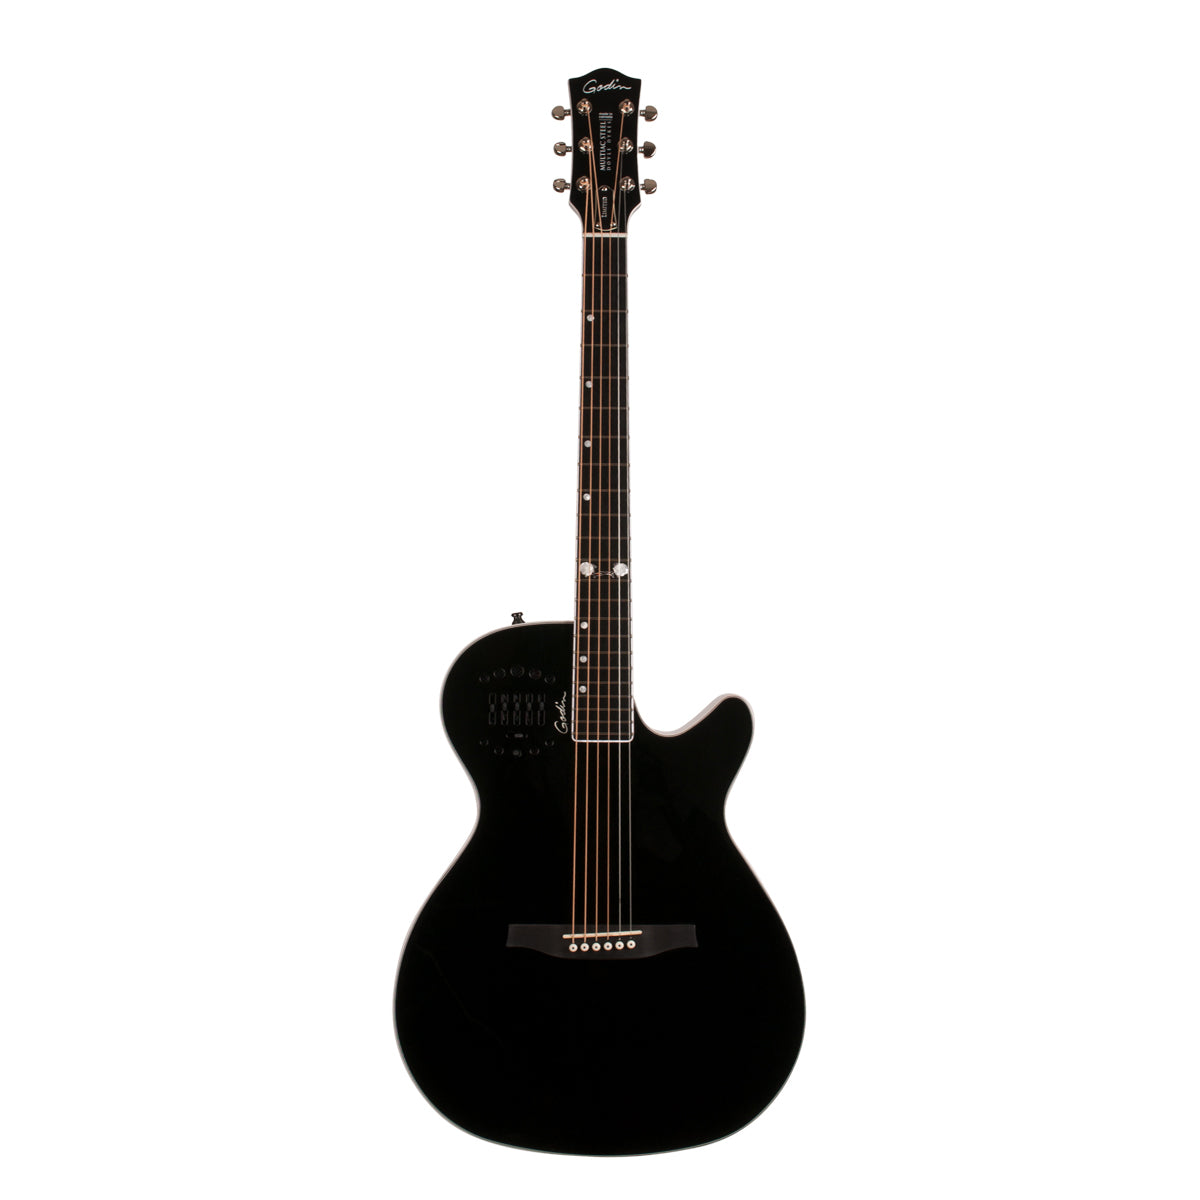 Godin Multiac Steel Doyle Dykes Signature Edition Black HG Electric Acoustic Guitar